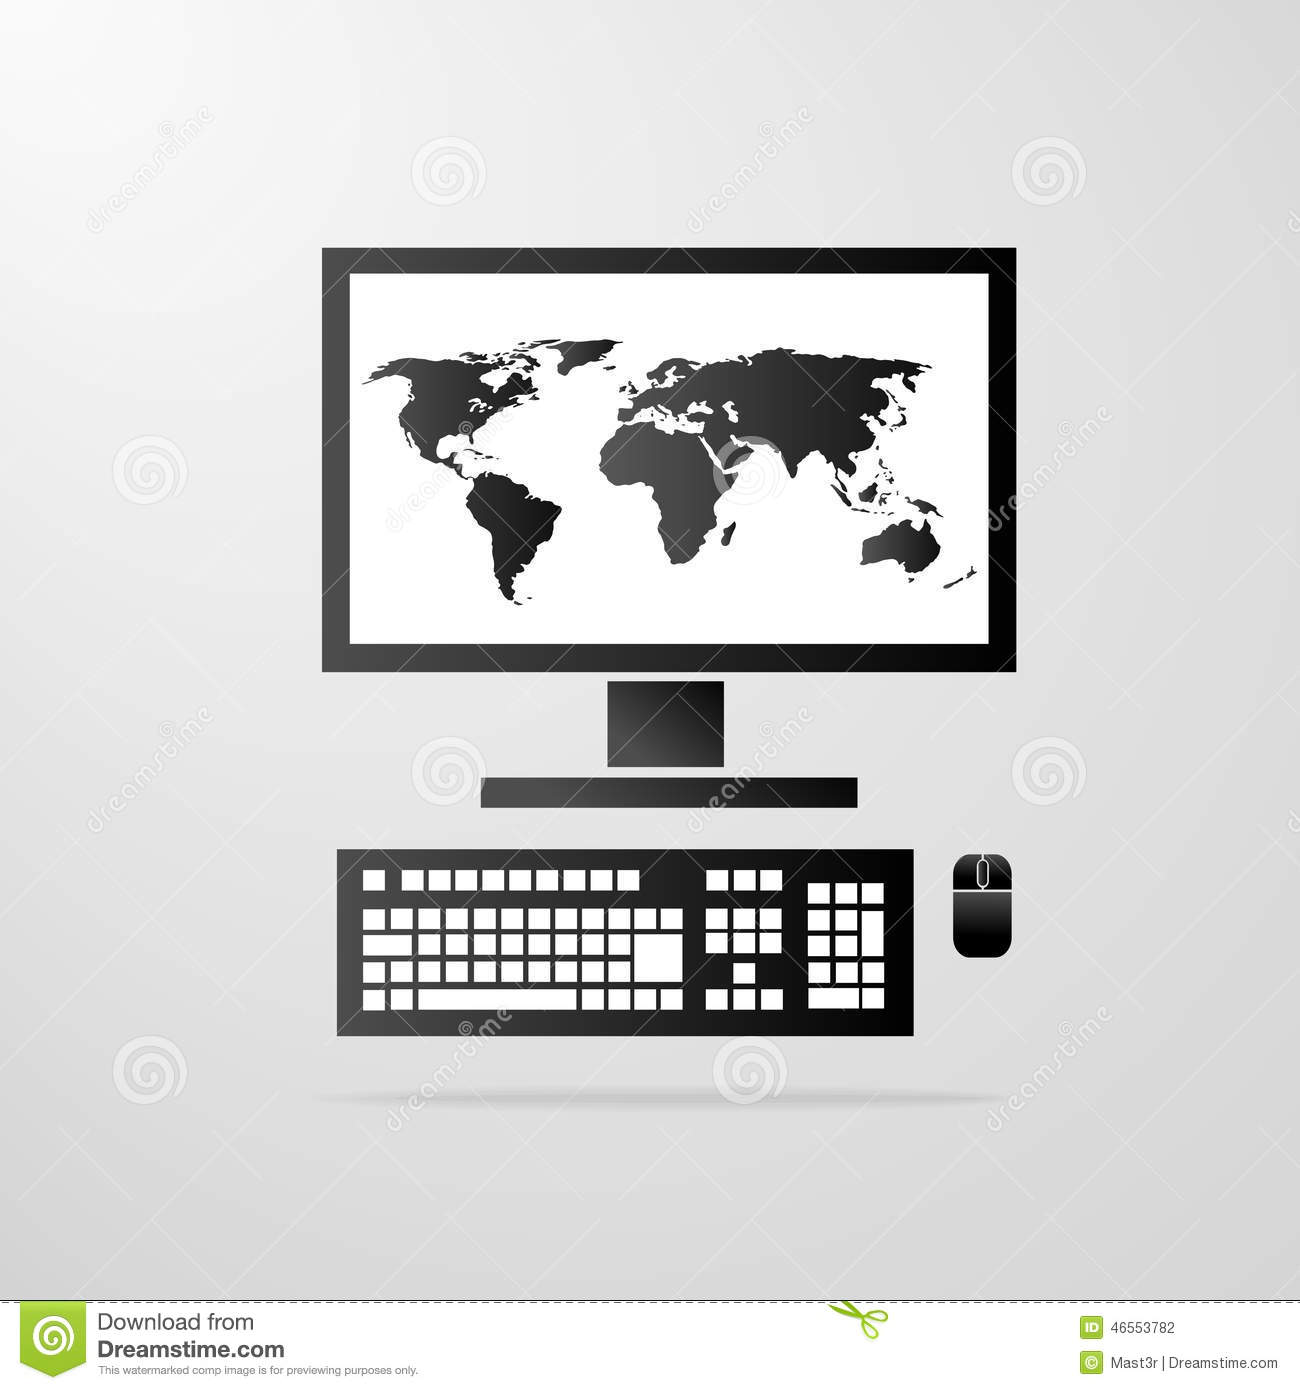 World Map Download For Computer. Computer desktop icon world map vector Desktop Icon World Map Vector Stock  Illustration